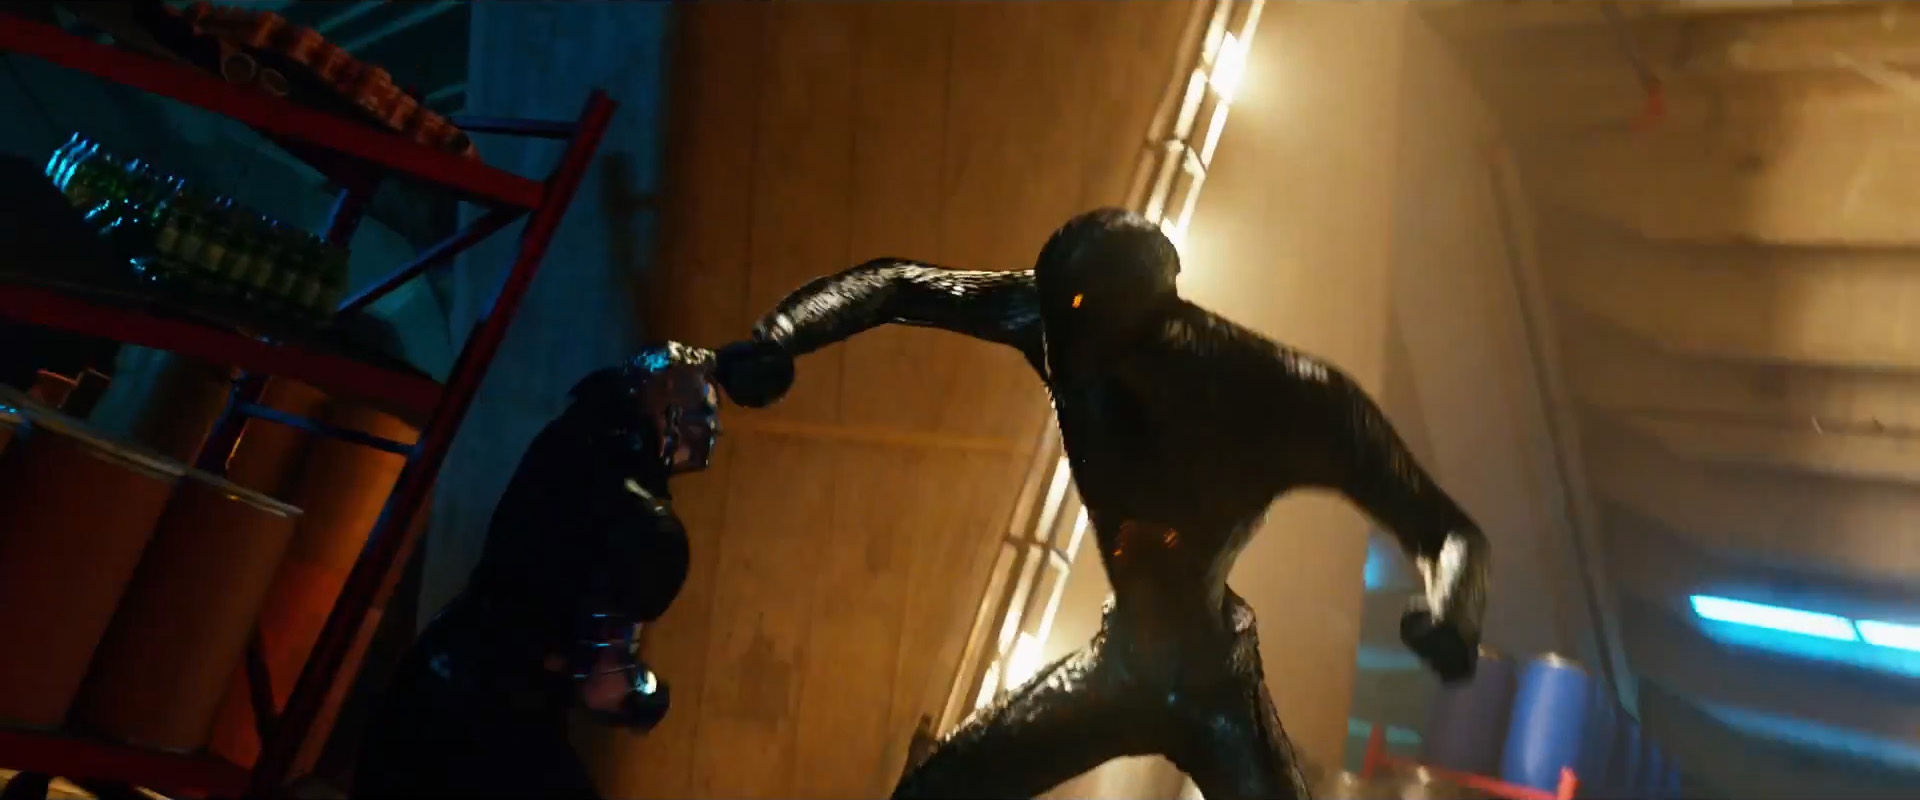 tv-spots-for-x-men-days-of-future-past-focus-on-sentinels